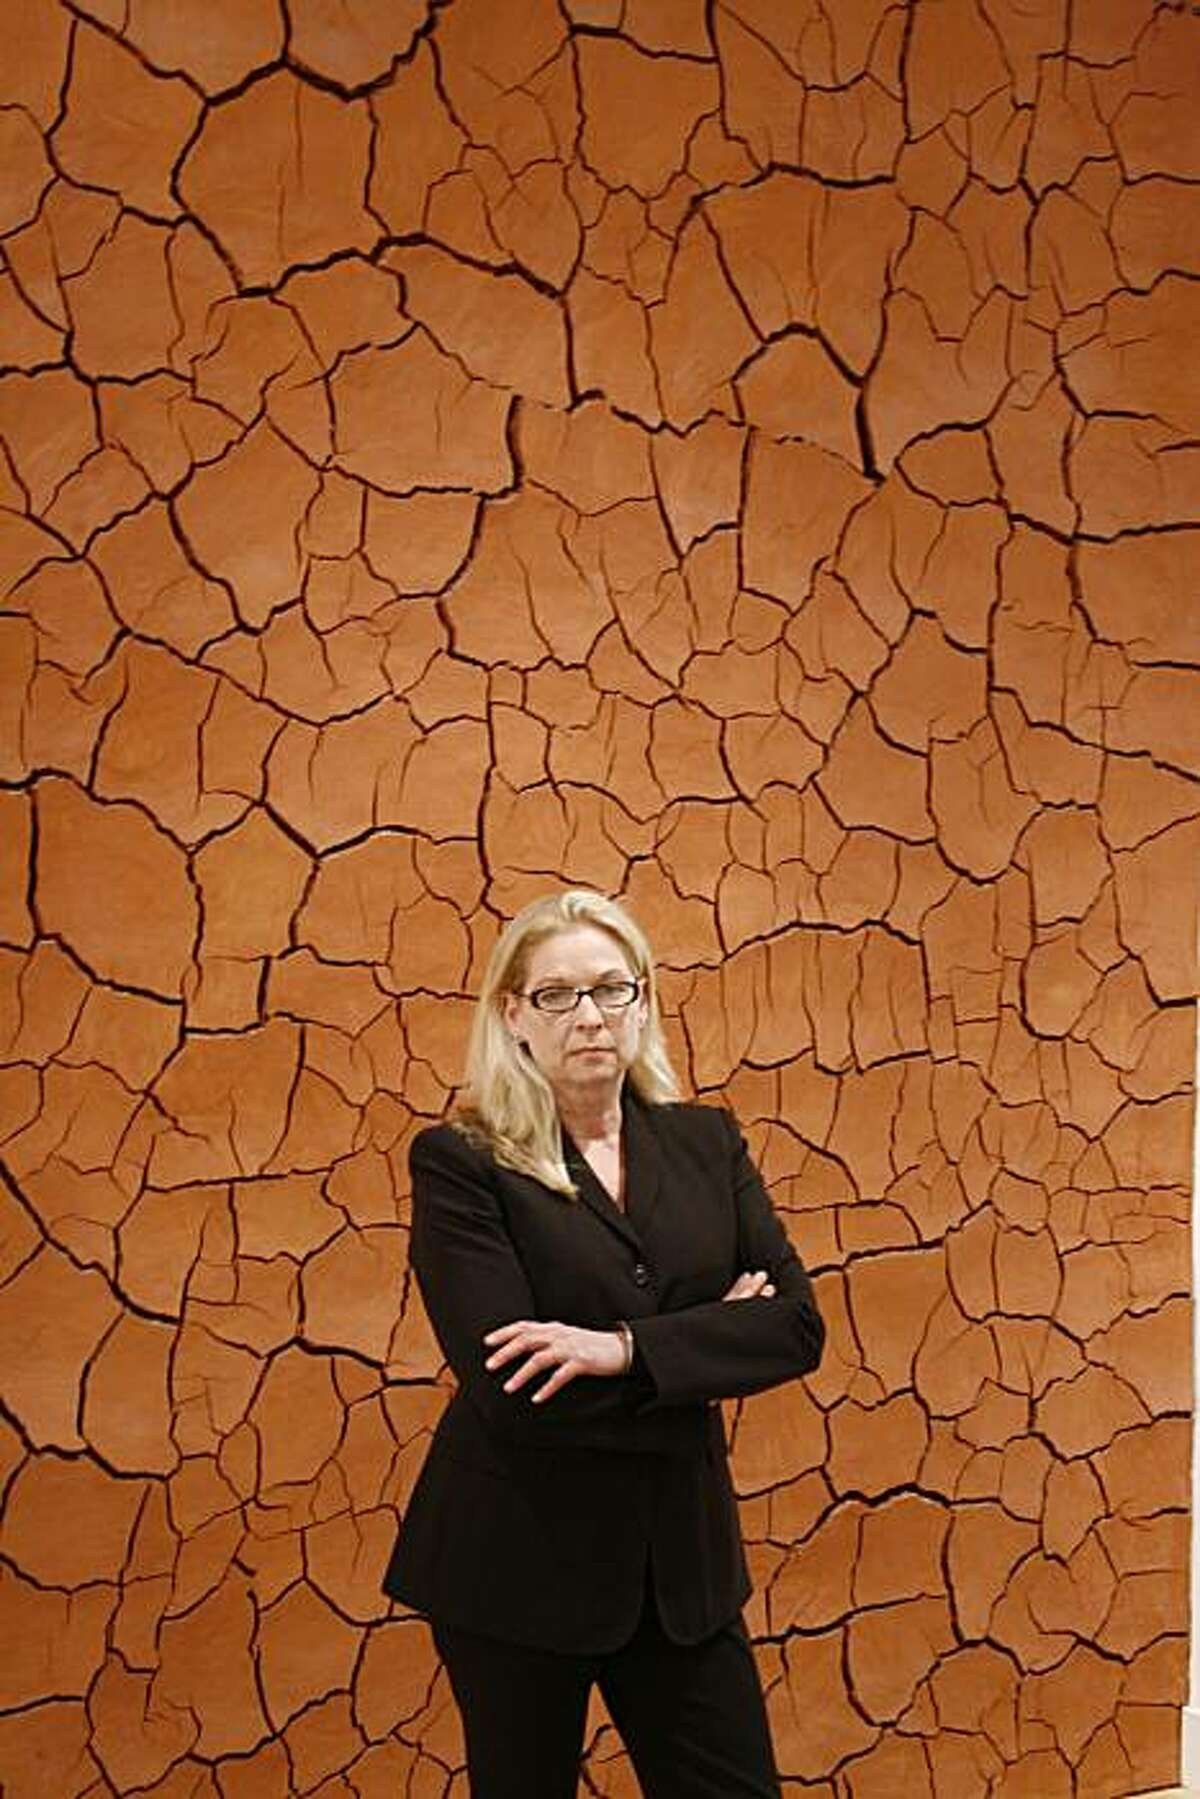 Cheryl Haines, Director of Haines Gallery in San Francisco, in front of the galleries permanent installation of Andy Goldsworthyís Clay Wall, installed in 1996. Photo by Monique Deschaines, 2010.